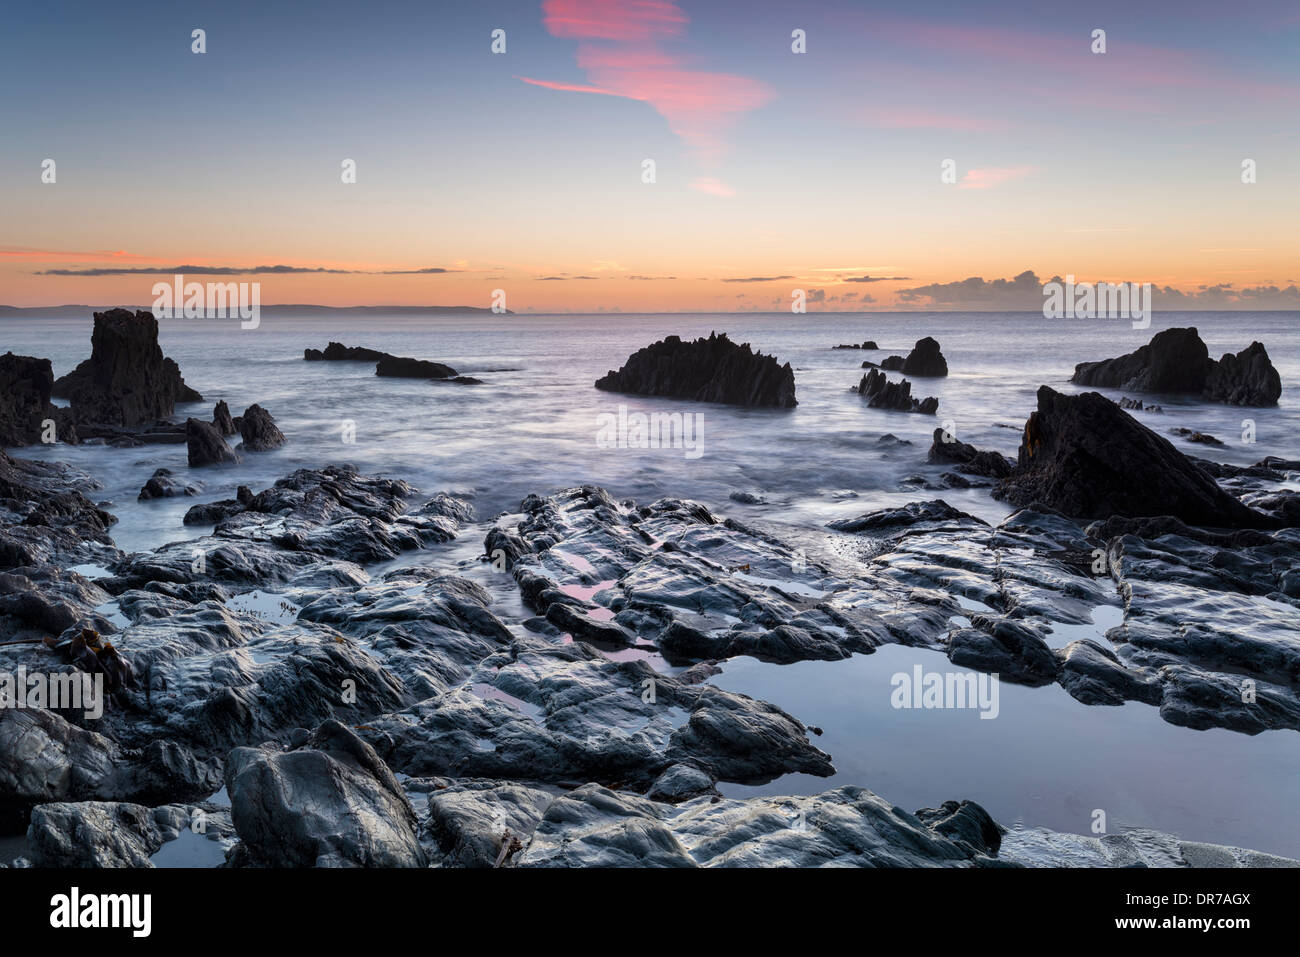 Sunrise at the beach at Looe on the south coast of Cornwall - Stock Image